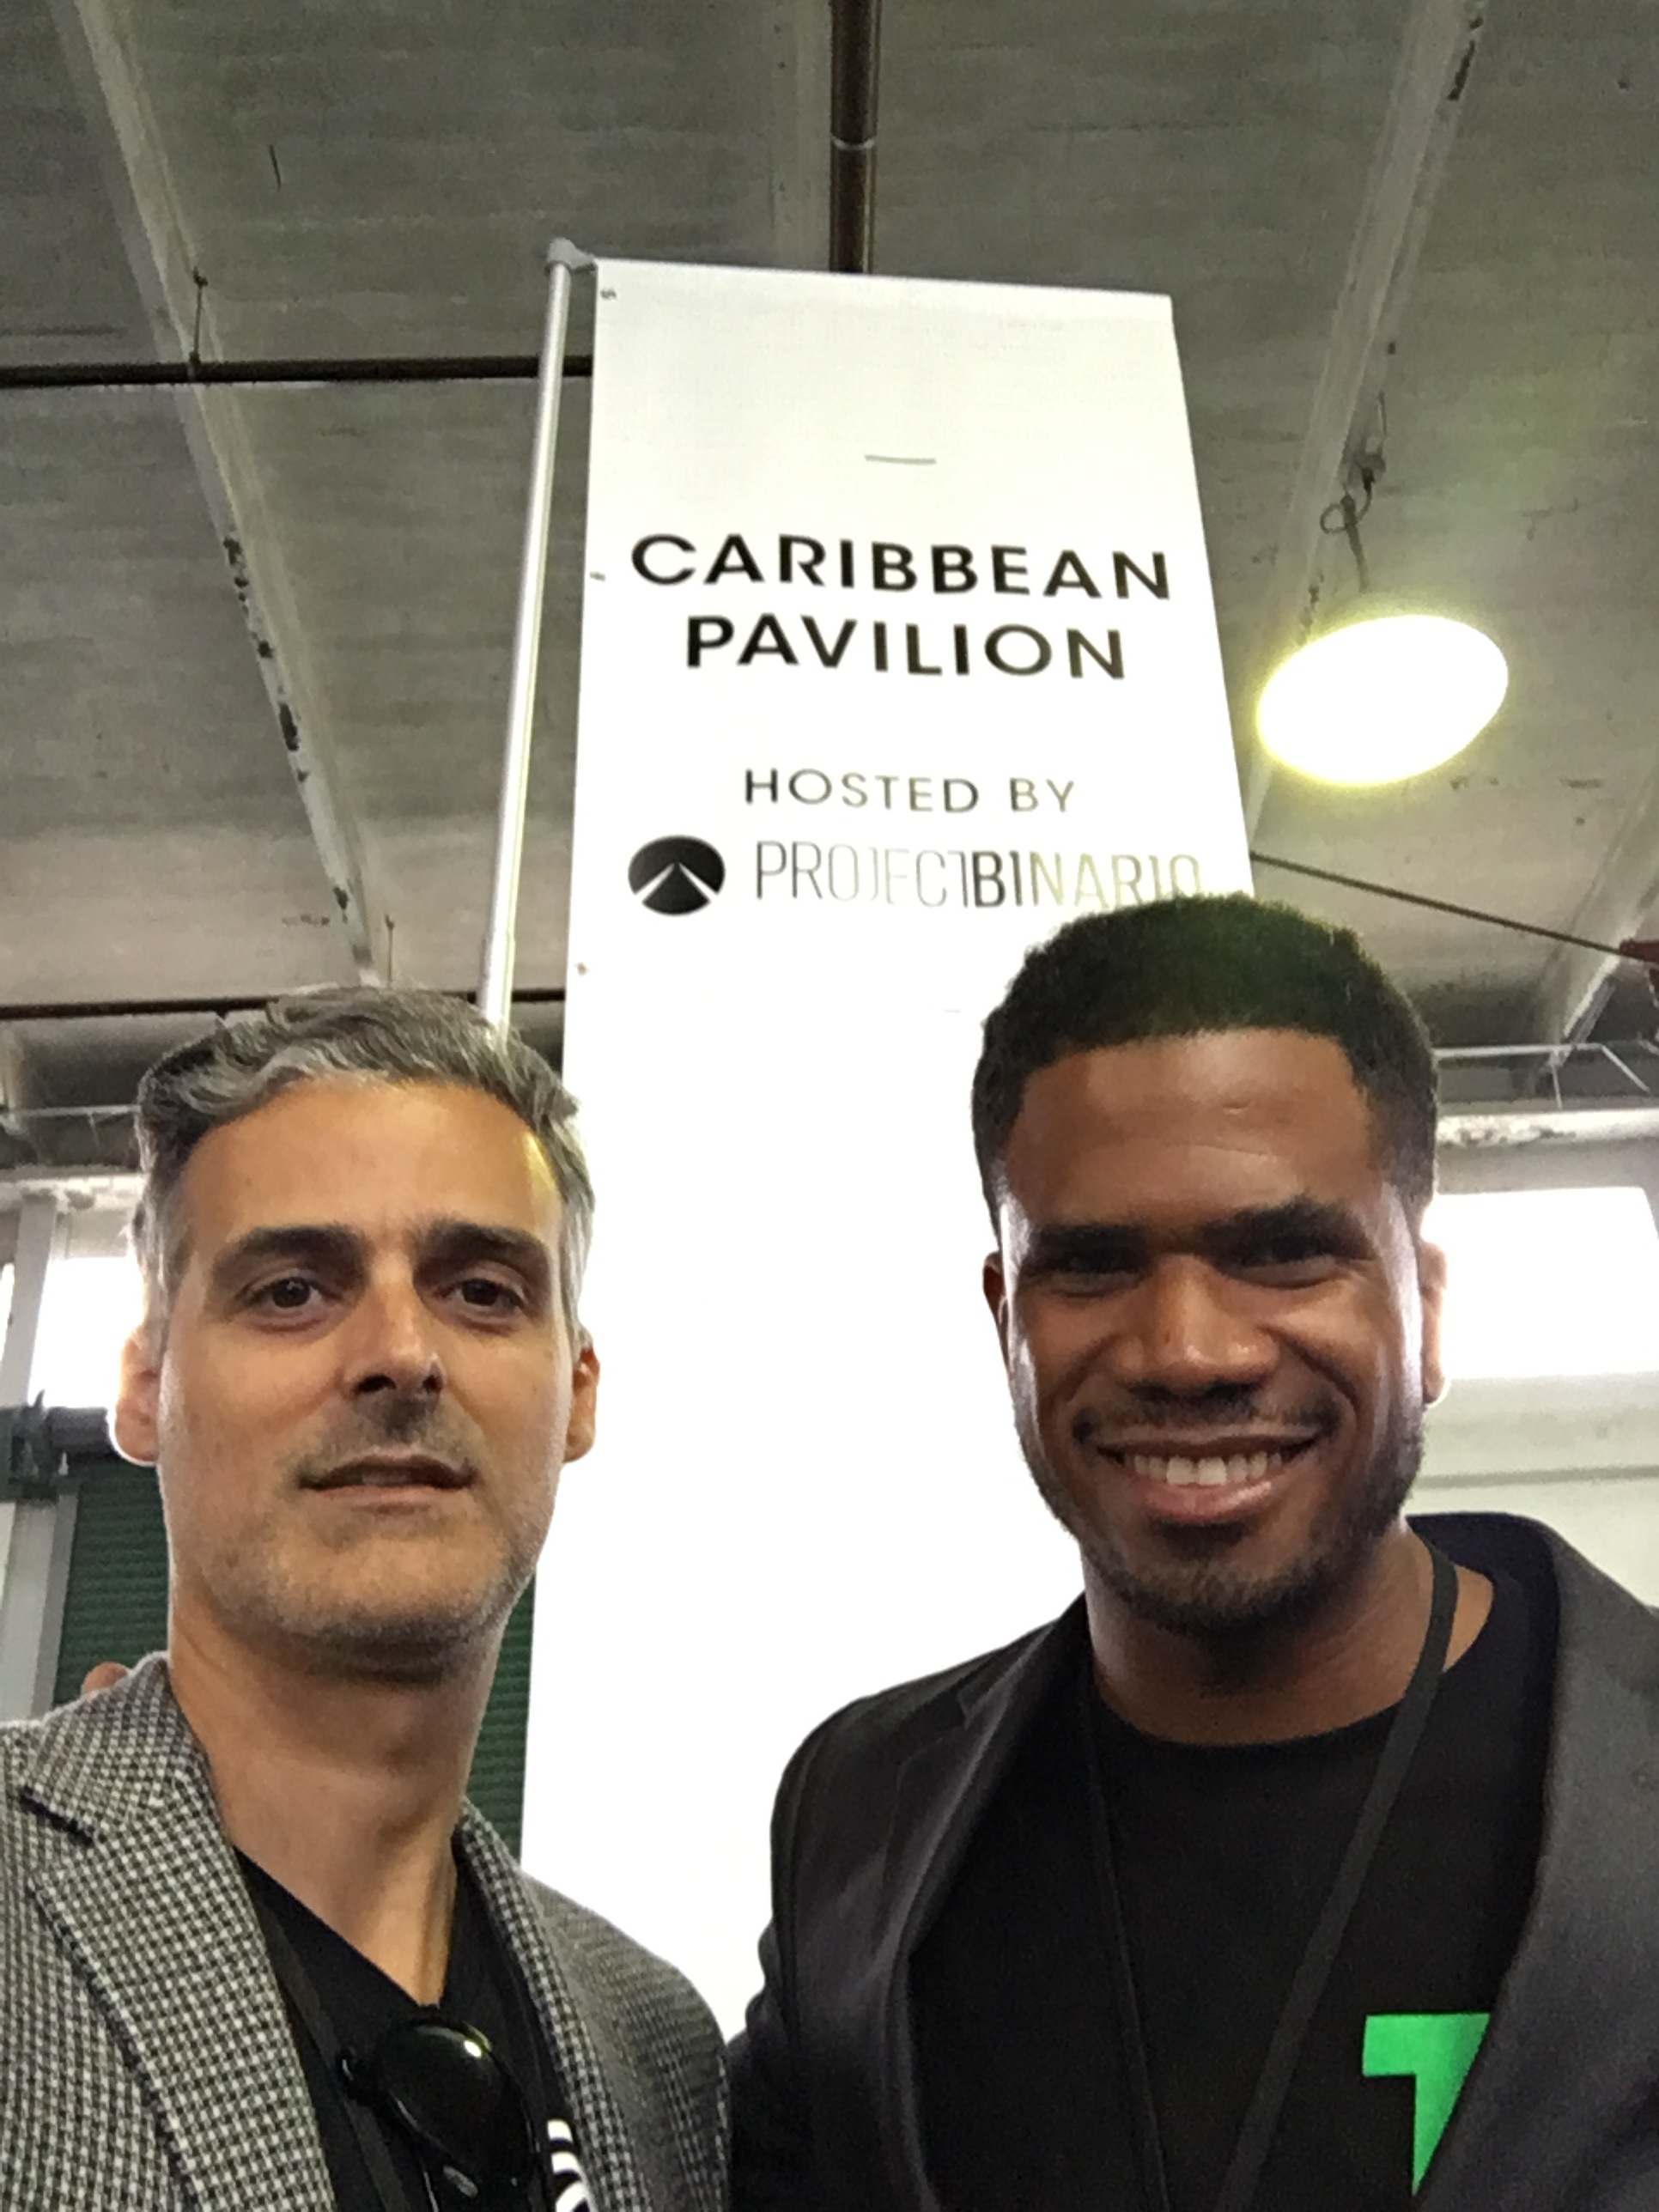 ProjectBinario's Eddy Perez and Caribbean Transit Solution's Khalil Bryan in front of the Caribbean Pavilion banner at TechCrunch Disrupt